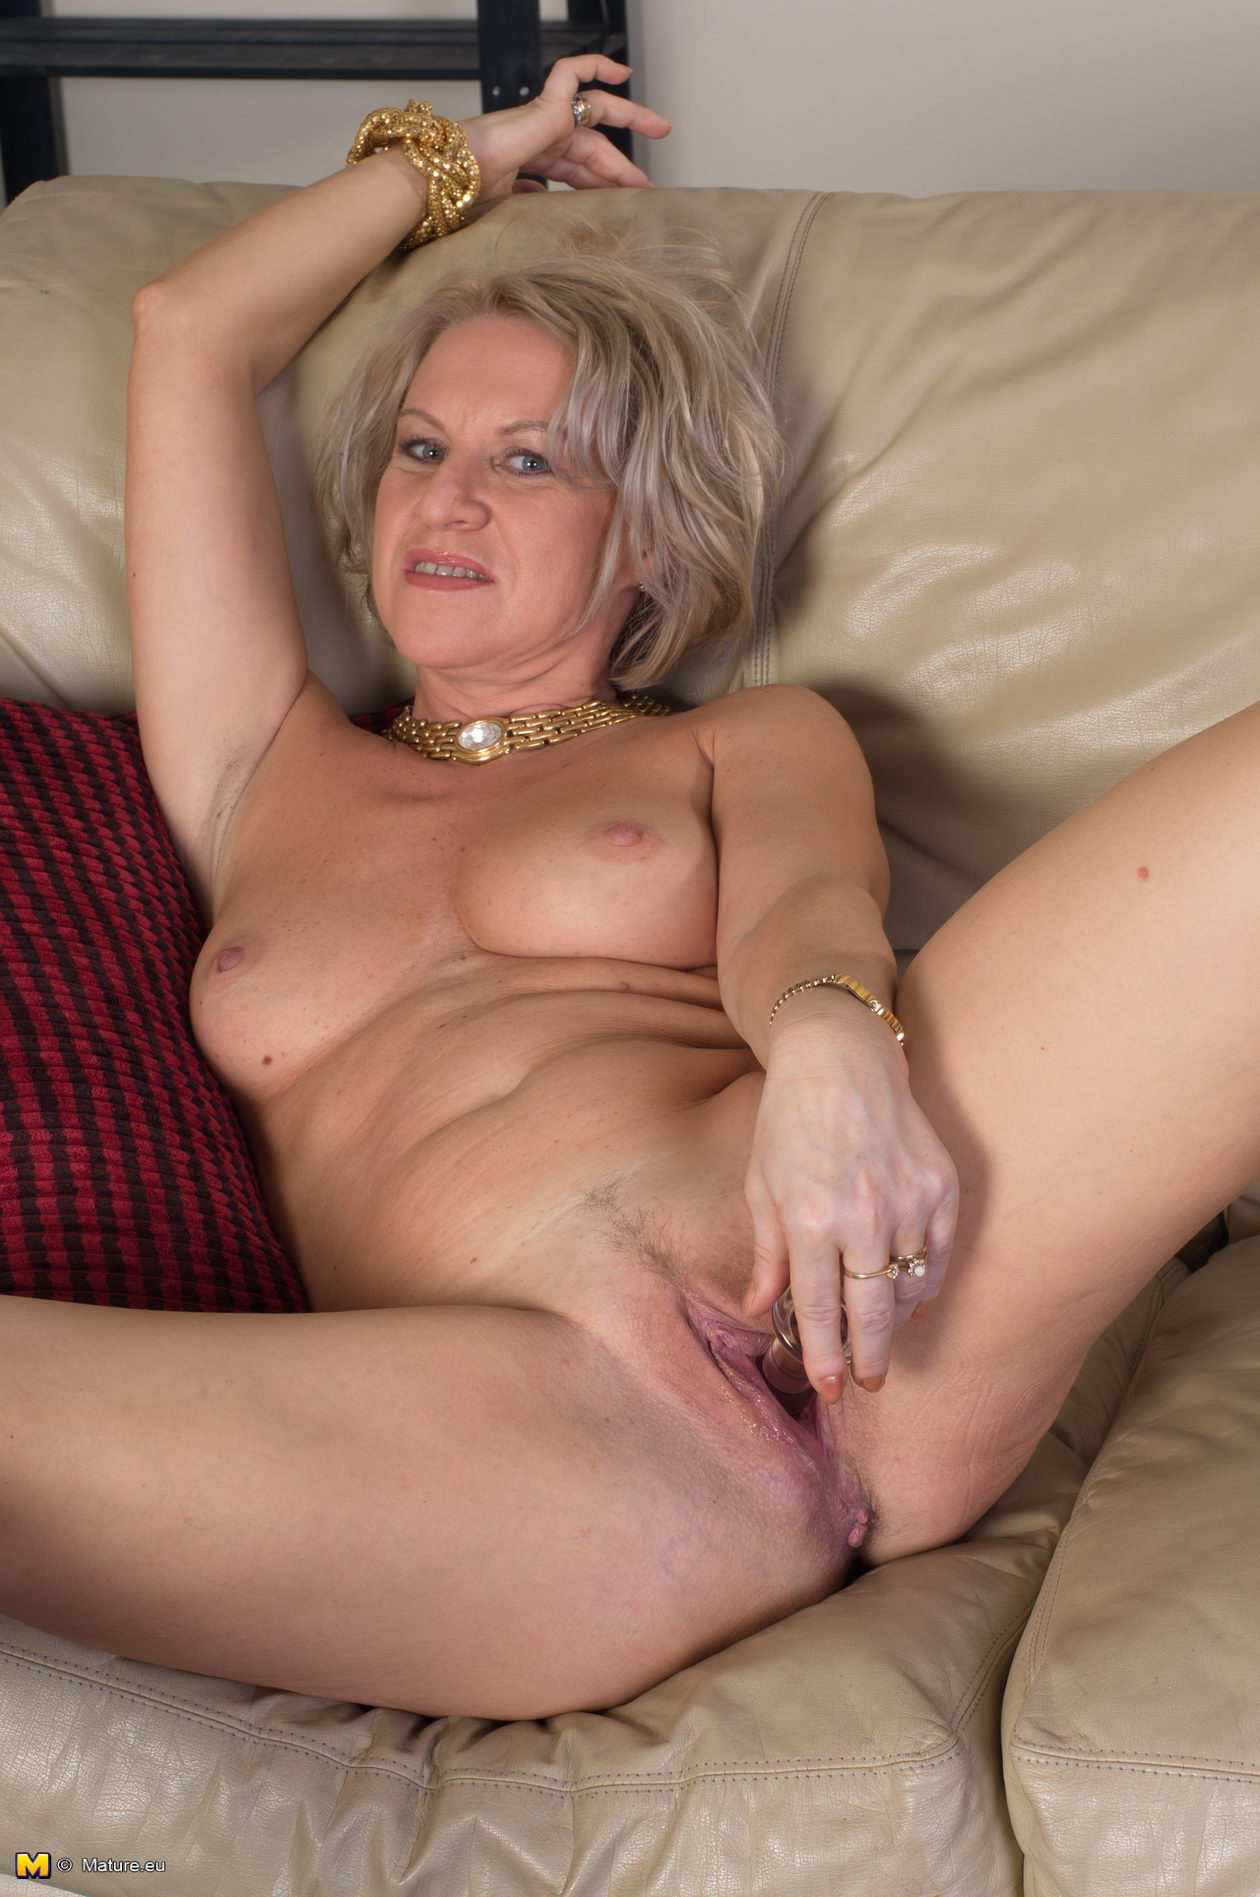 Mature free full sceen